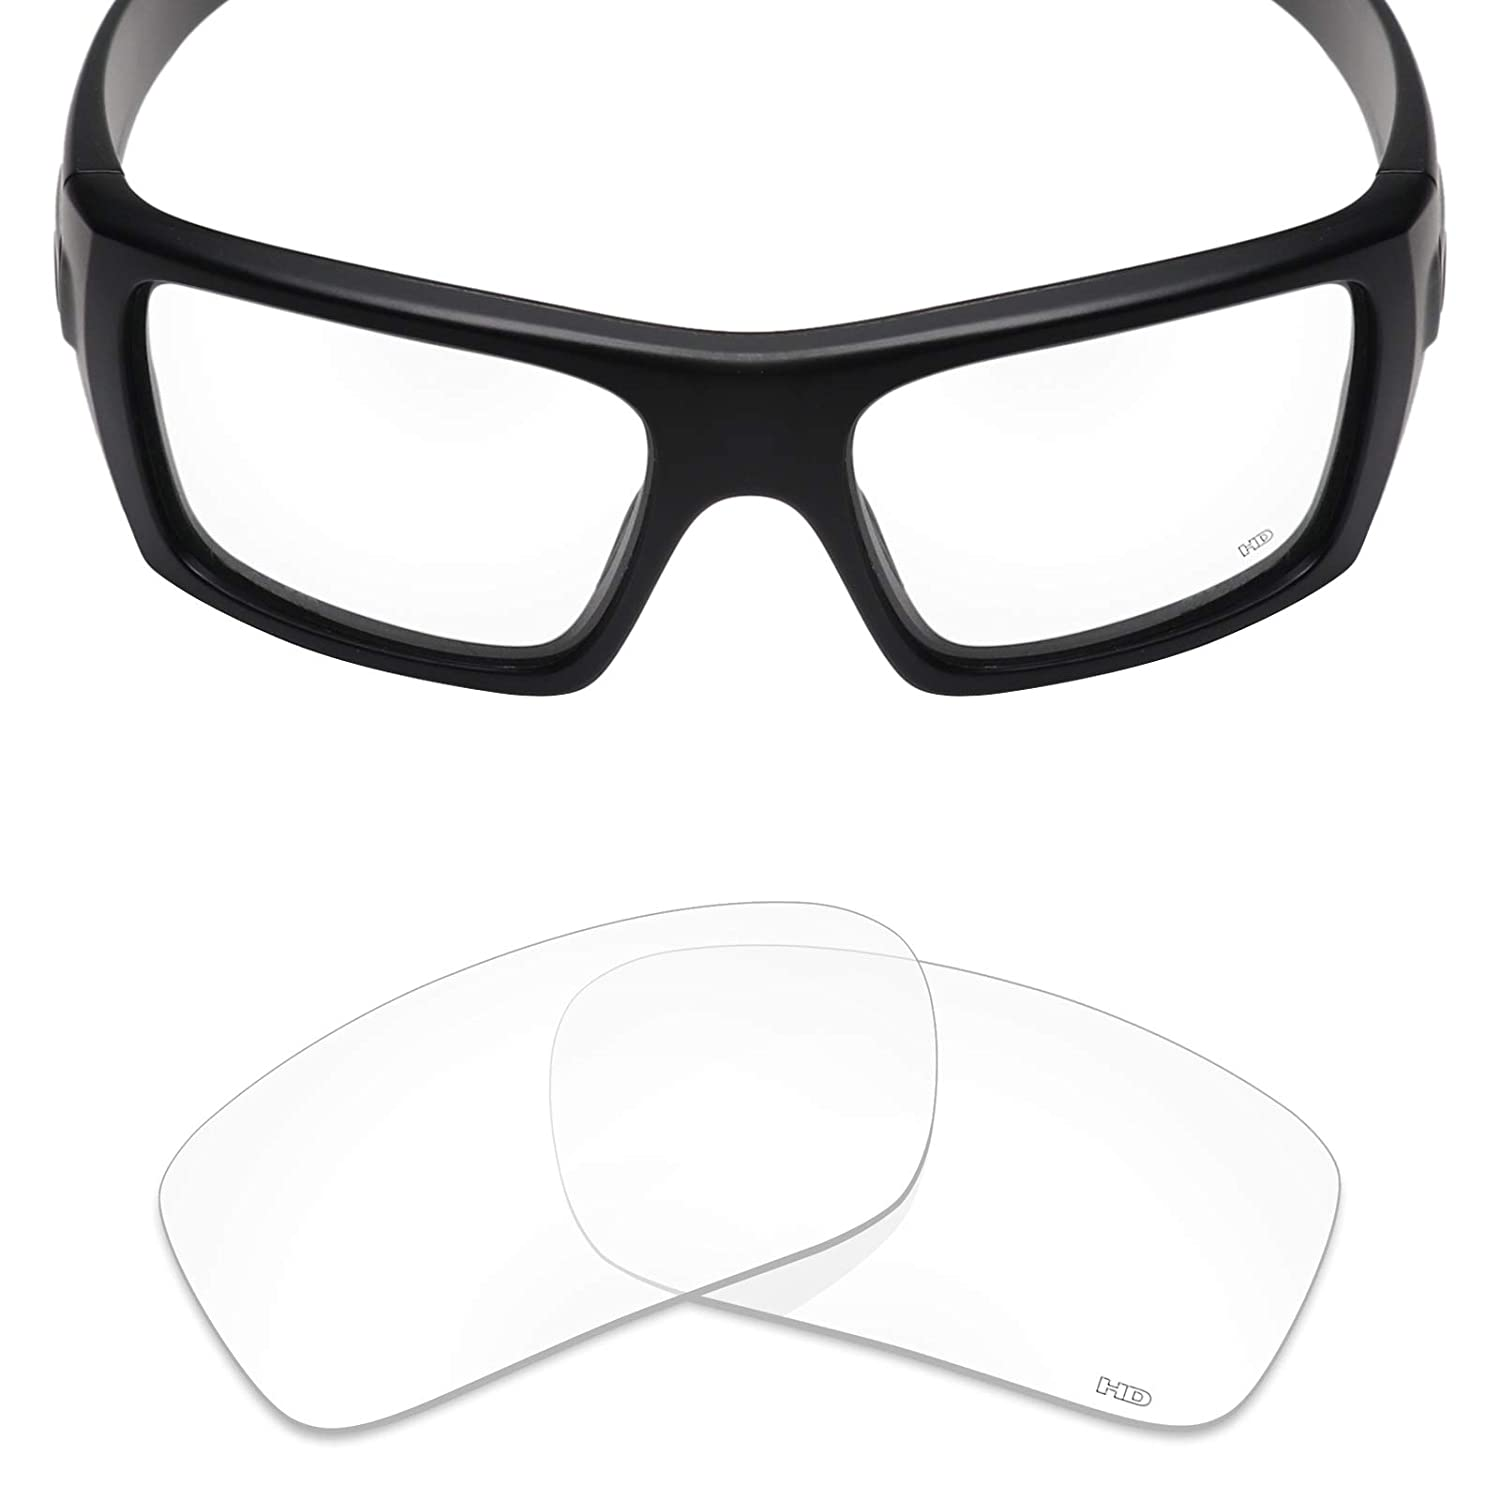 bbb5c97a0bc5a Amazon.com  Mryok+ Polarized Replacement Lenses for Oakley Si Ballistic Det  Cord - HD Clear  Clothing